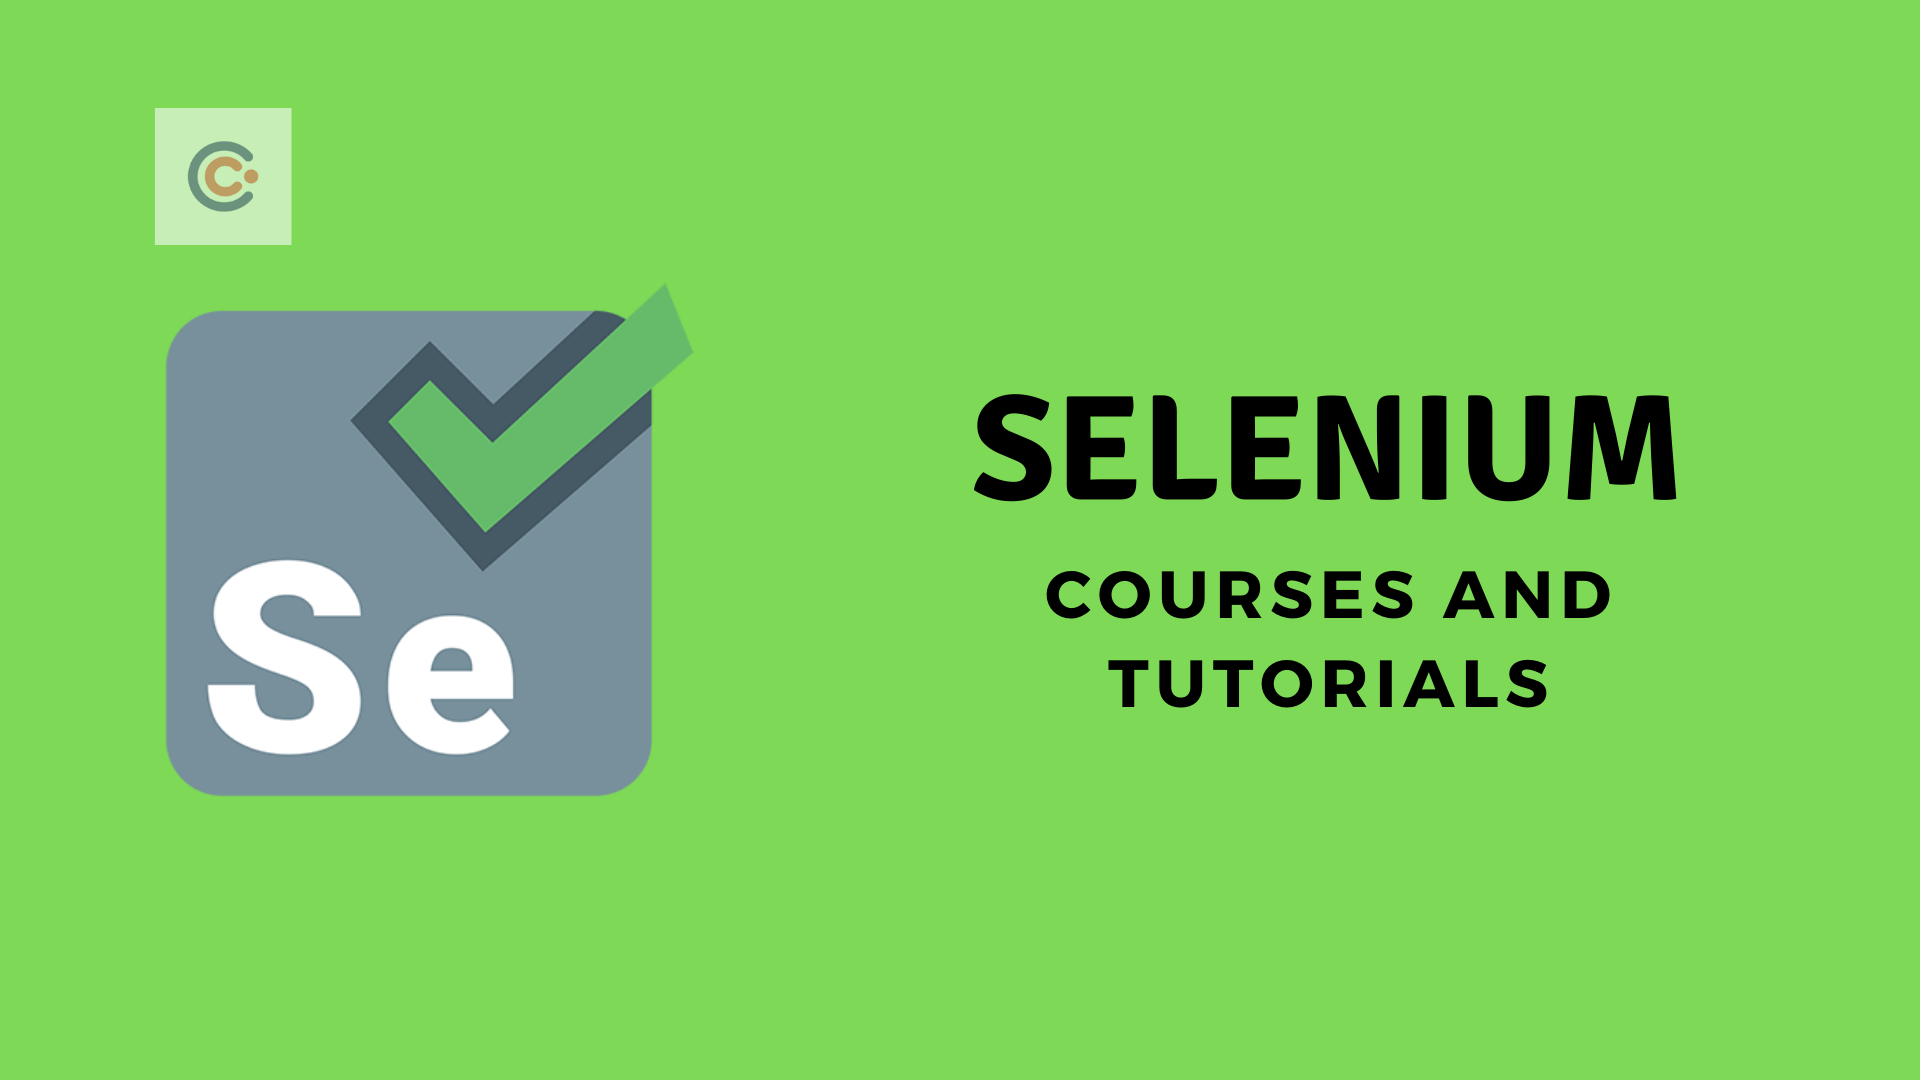 11 Best Selenium Tutorials & Courses - Learn Selenium Online